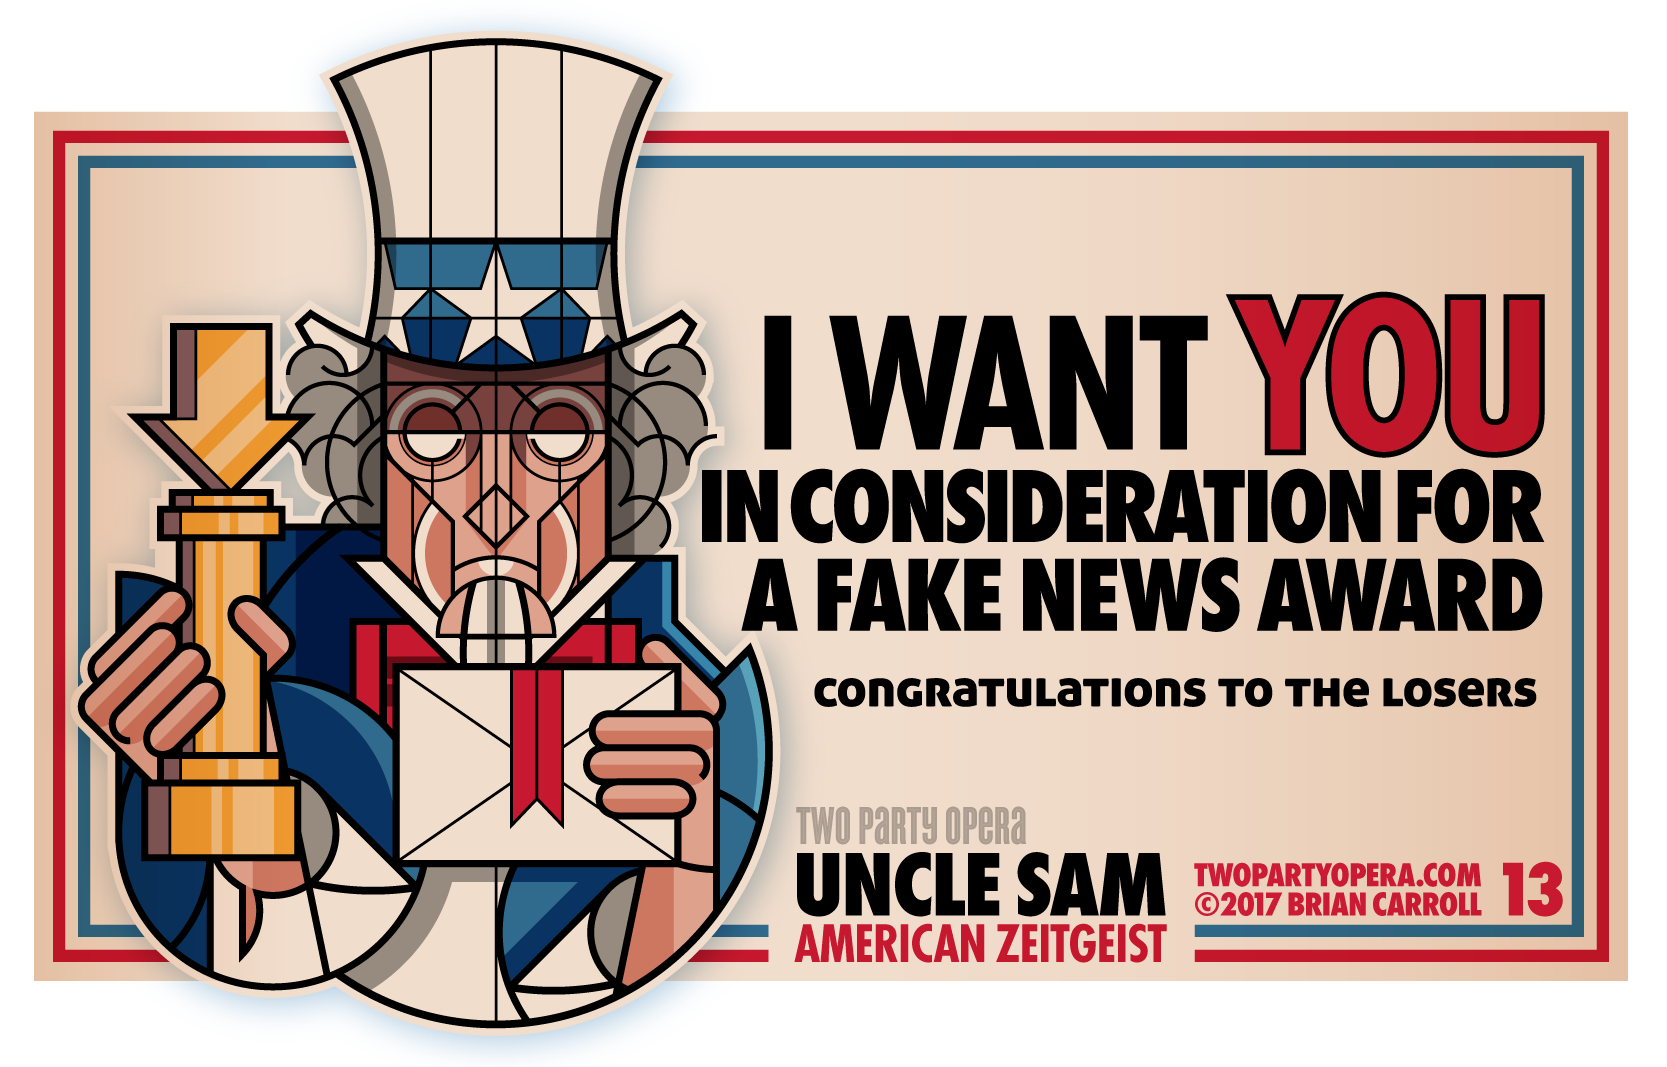 Uncle Sam: American Zeitgeist – 13